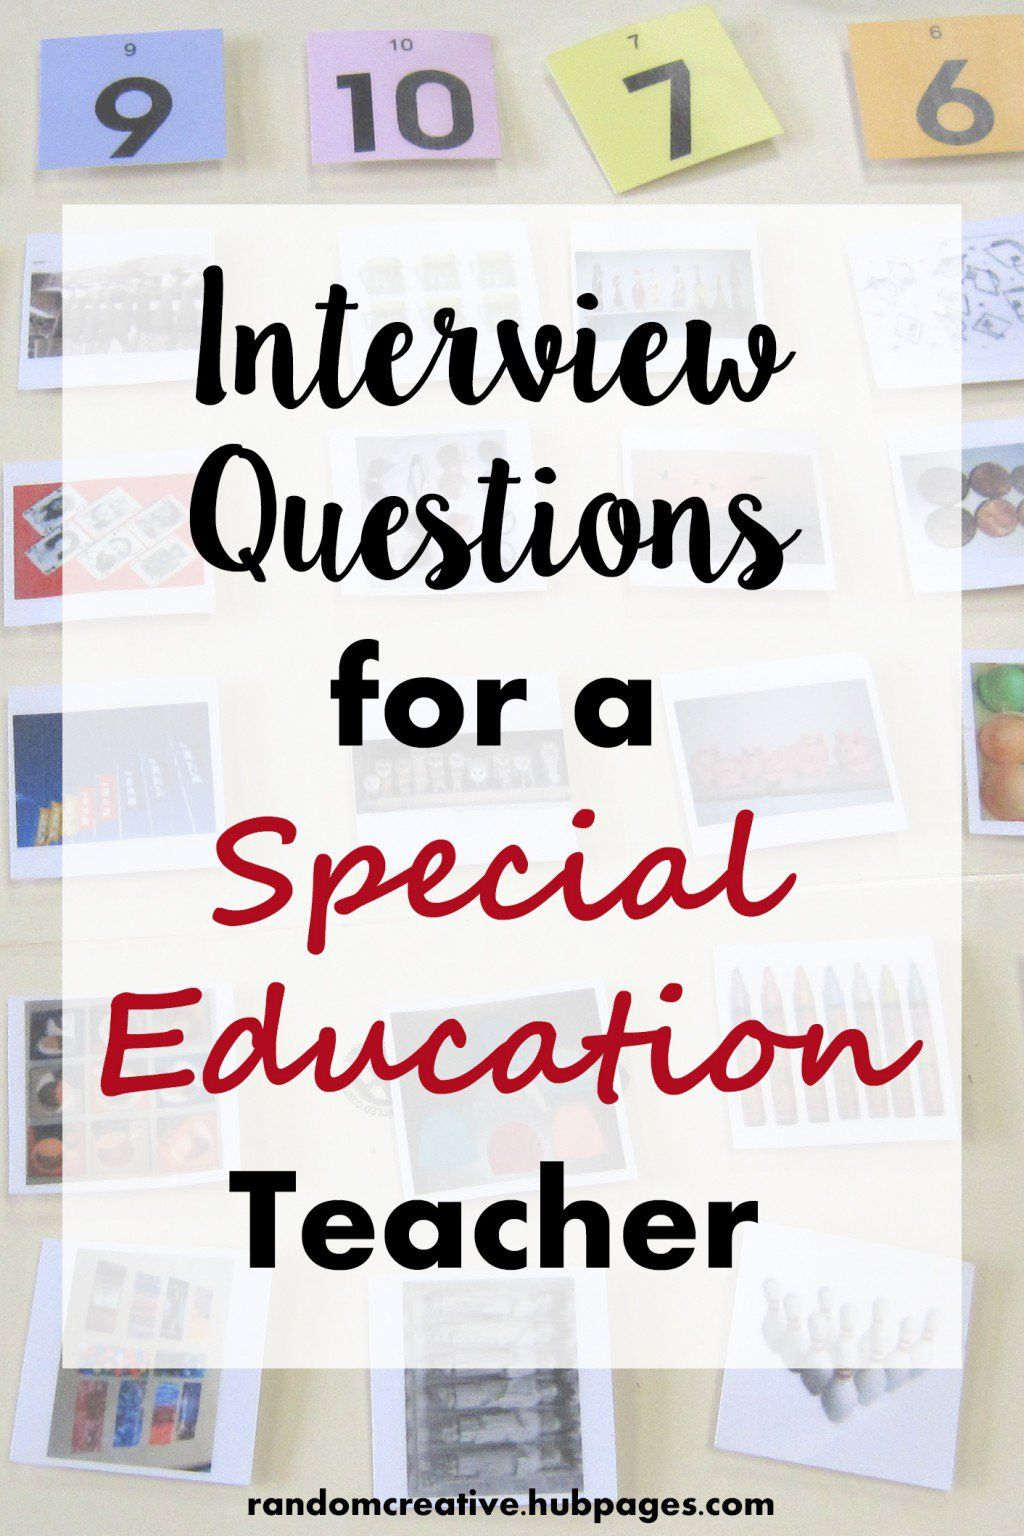 Interview Questions For A Special Education Teacher...questions And Answers  To Help You Prepare For Teaching Interviews! |  Http://randomcreative.hubpages. ...